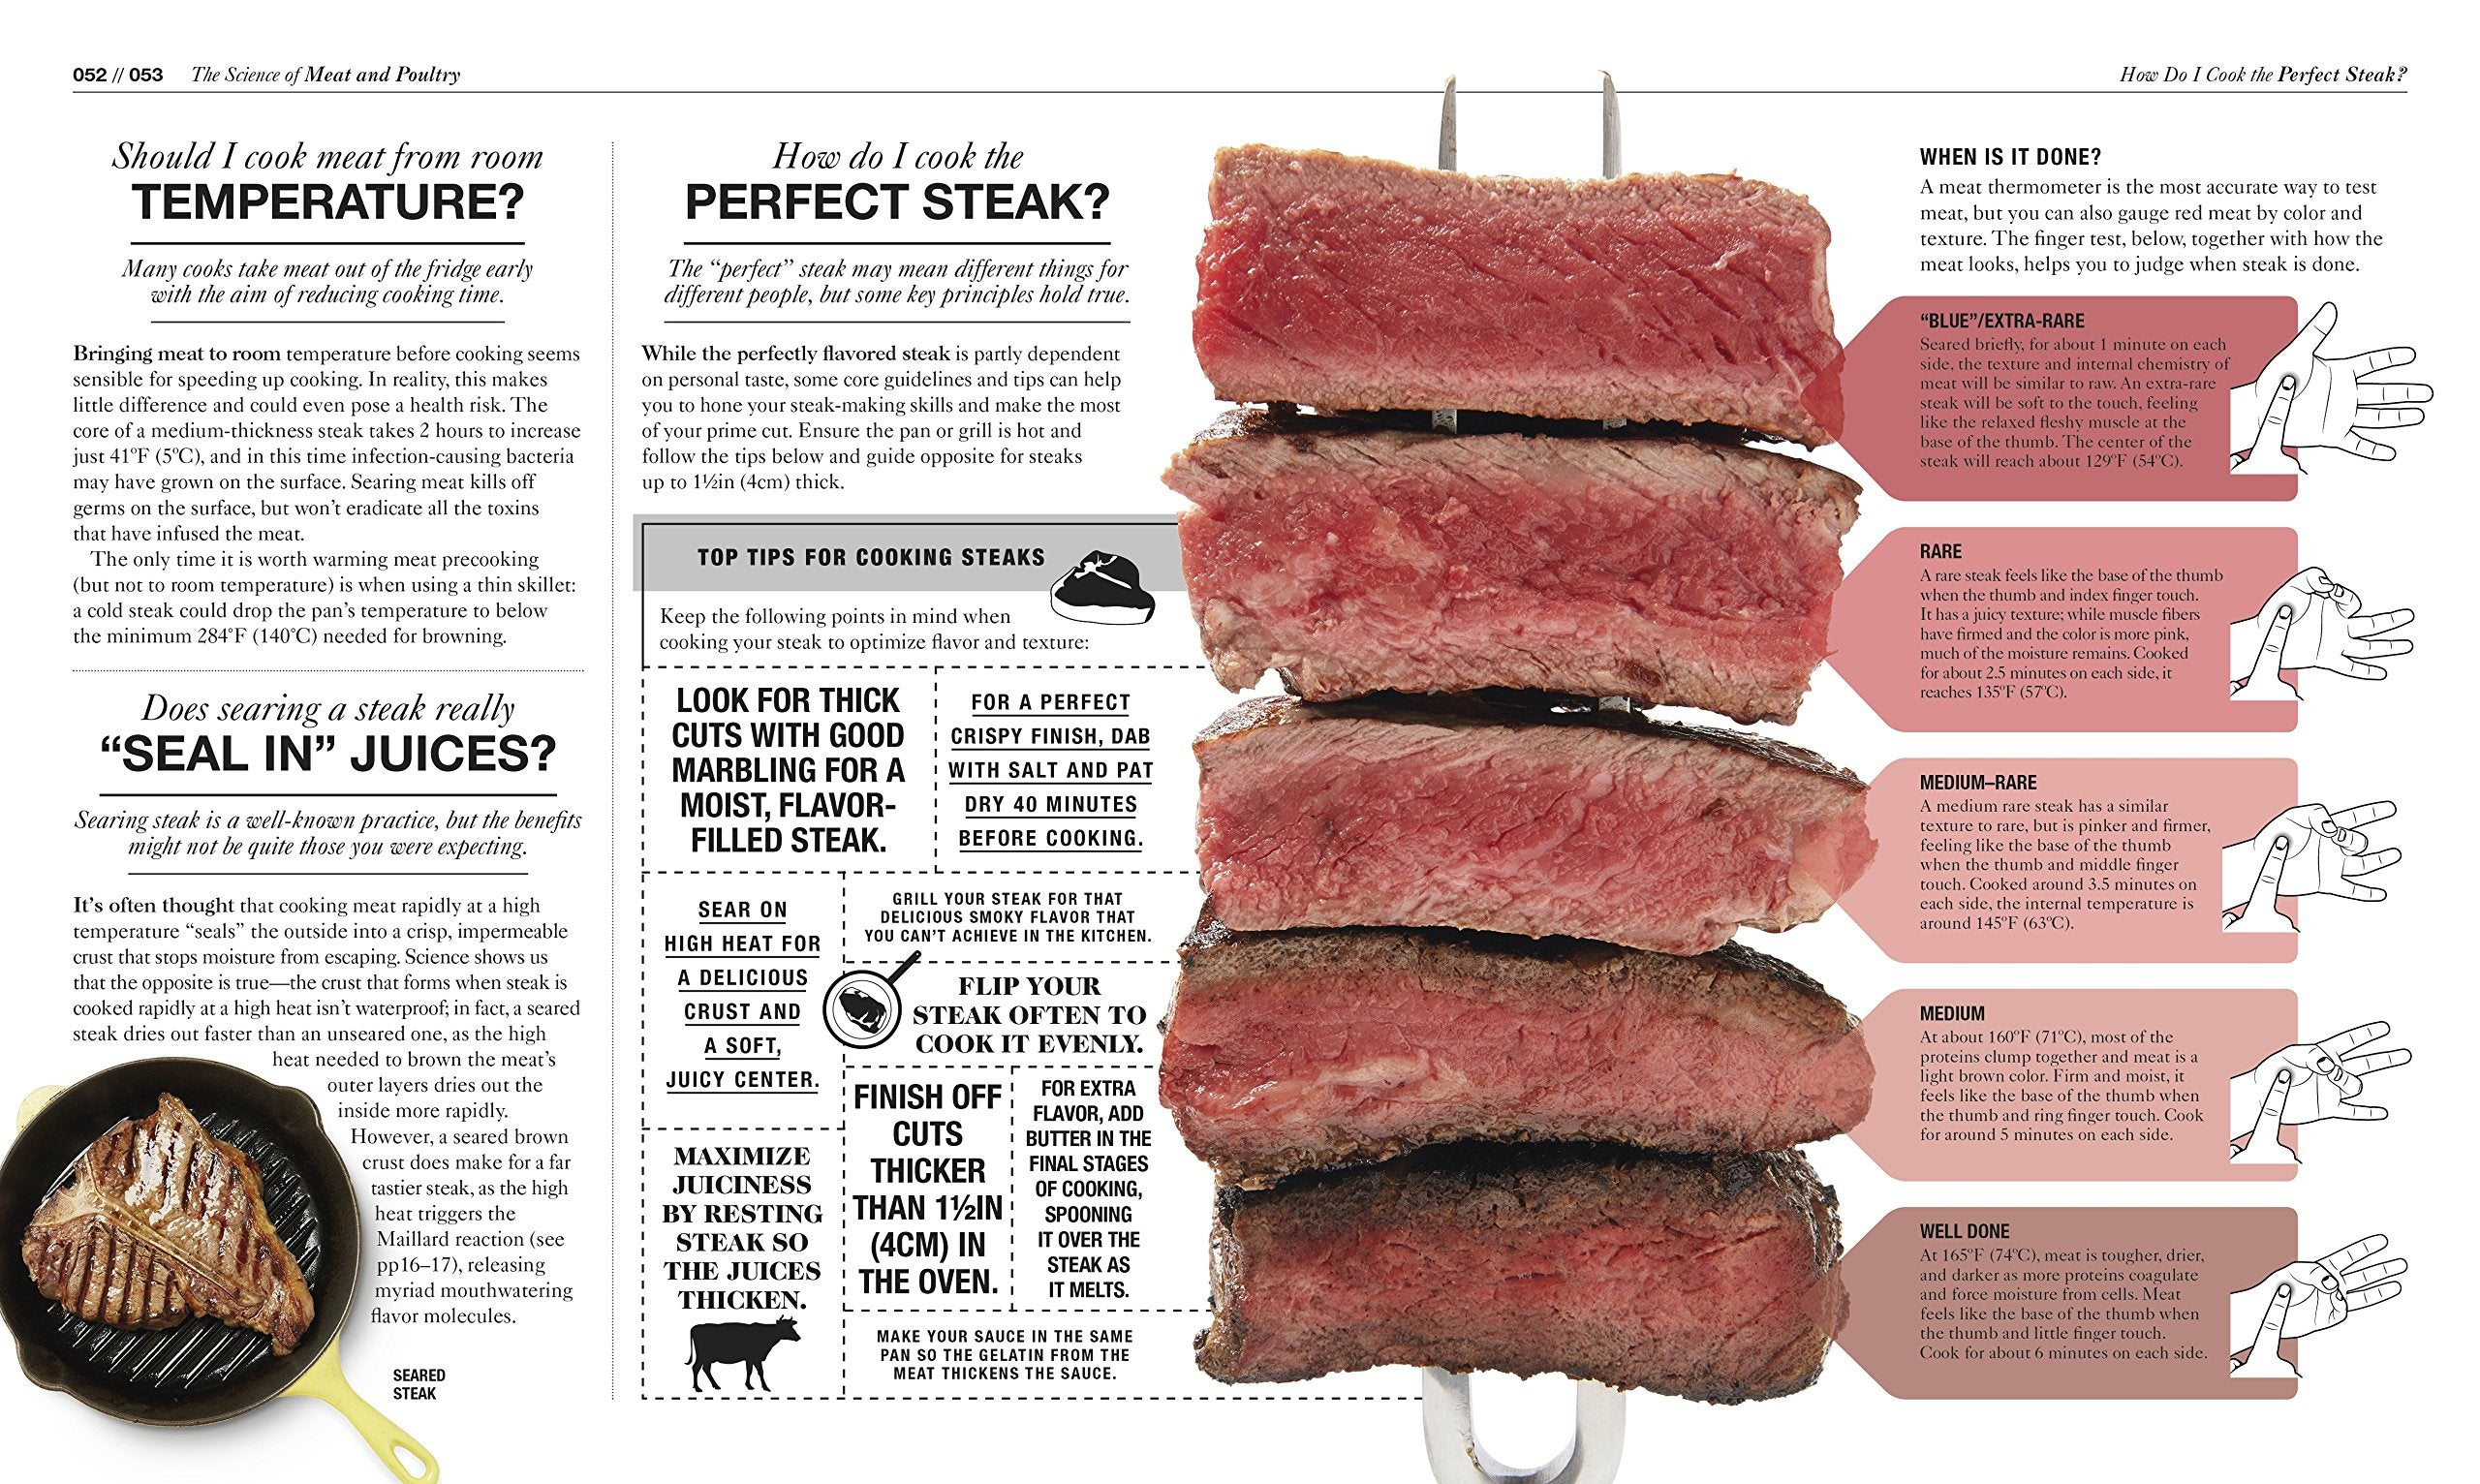 The Science of Cooking Meat